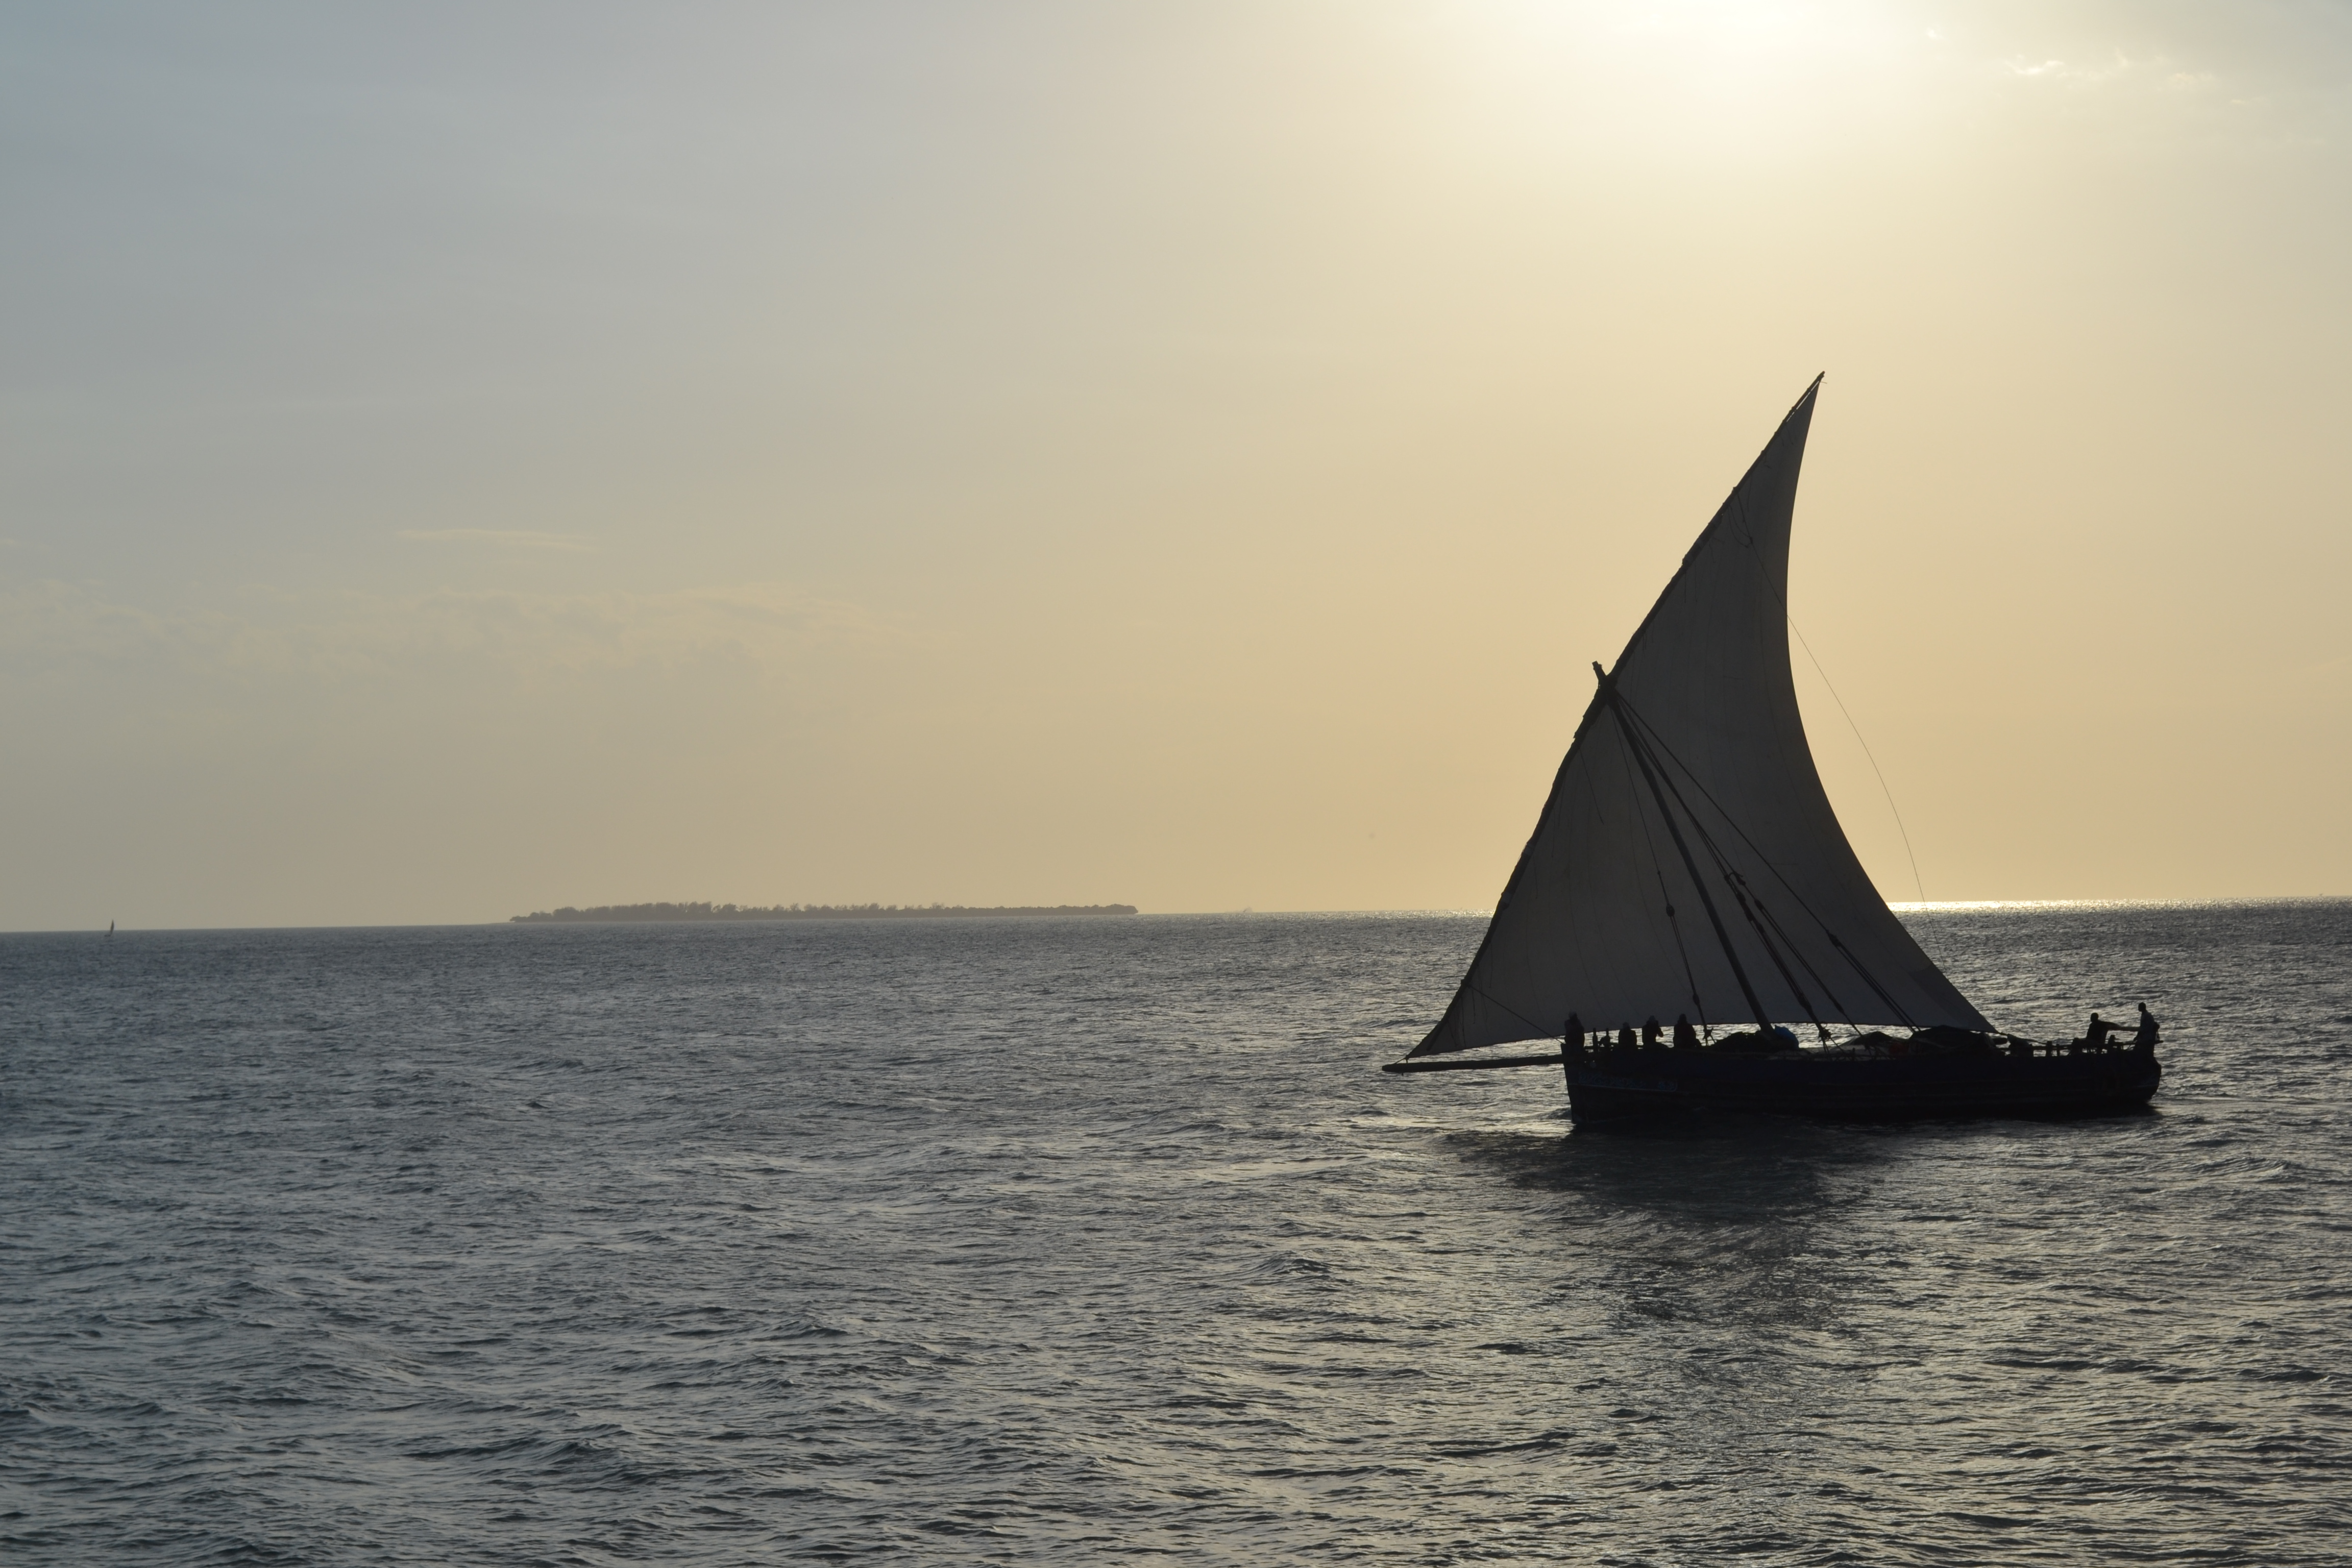 Guide to Stone Town: Step back in time